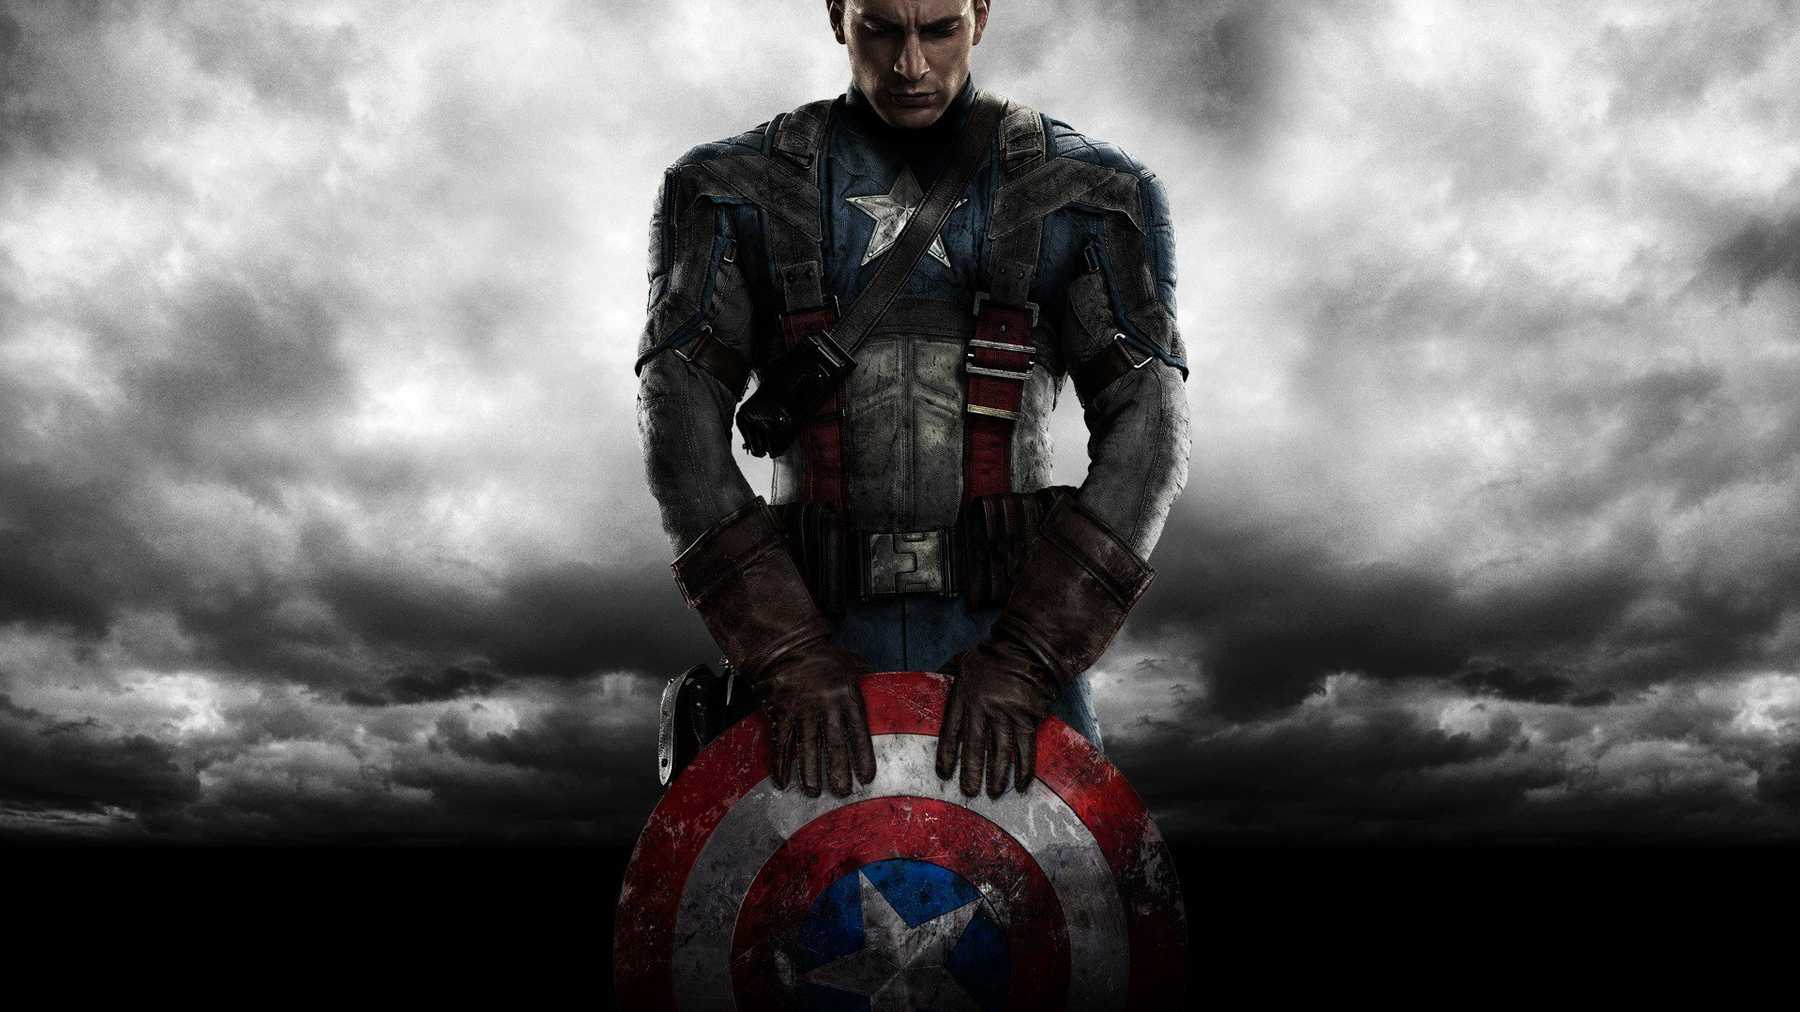 First Avenger Captain America The Review Movie Empire